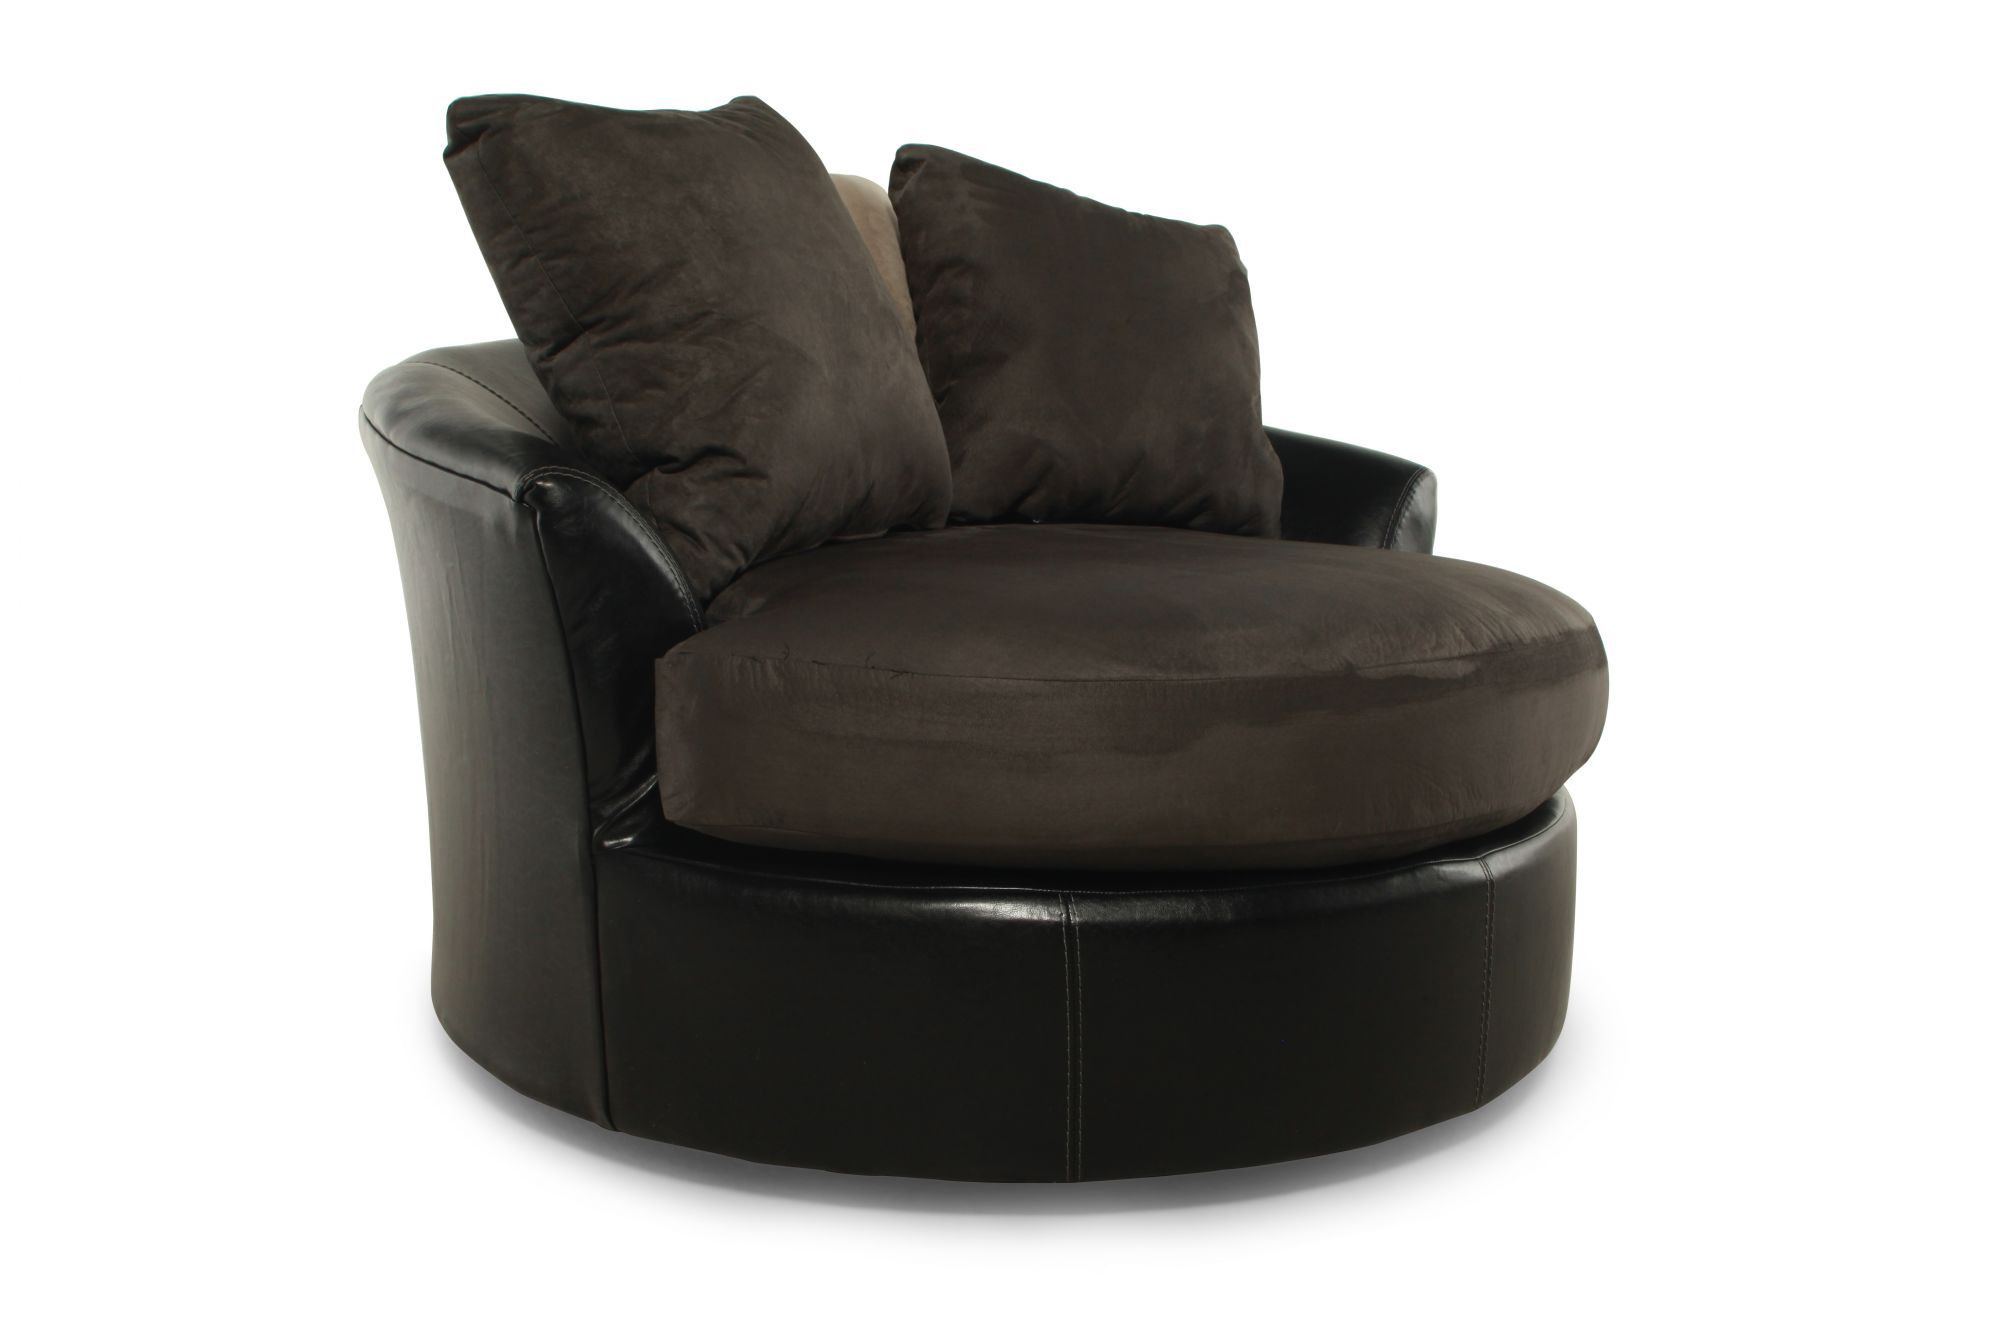 Circle Swivel Chair Round Microfiber 58 Quot Swivel Chair In Chocolate Mathis